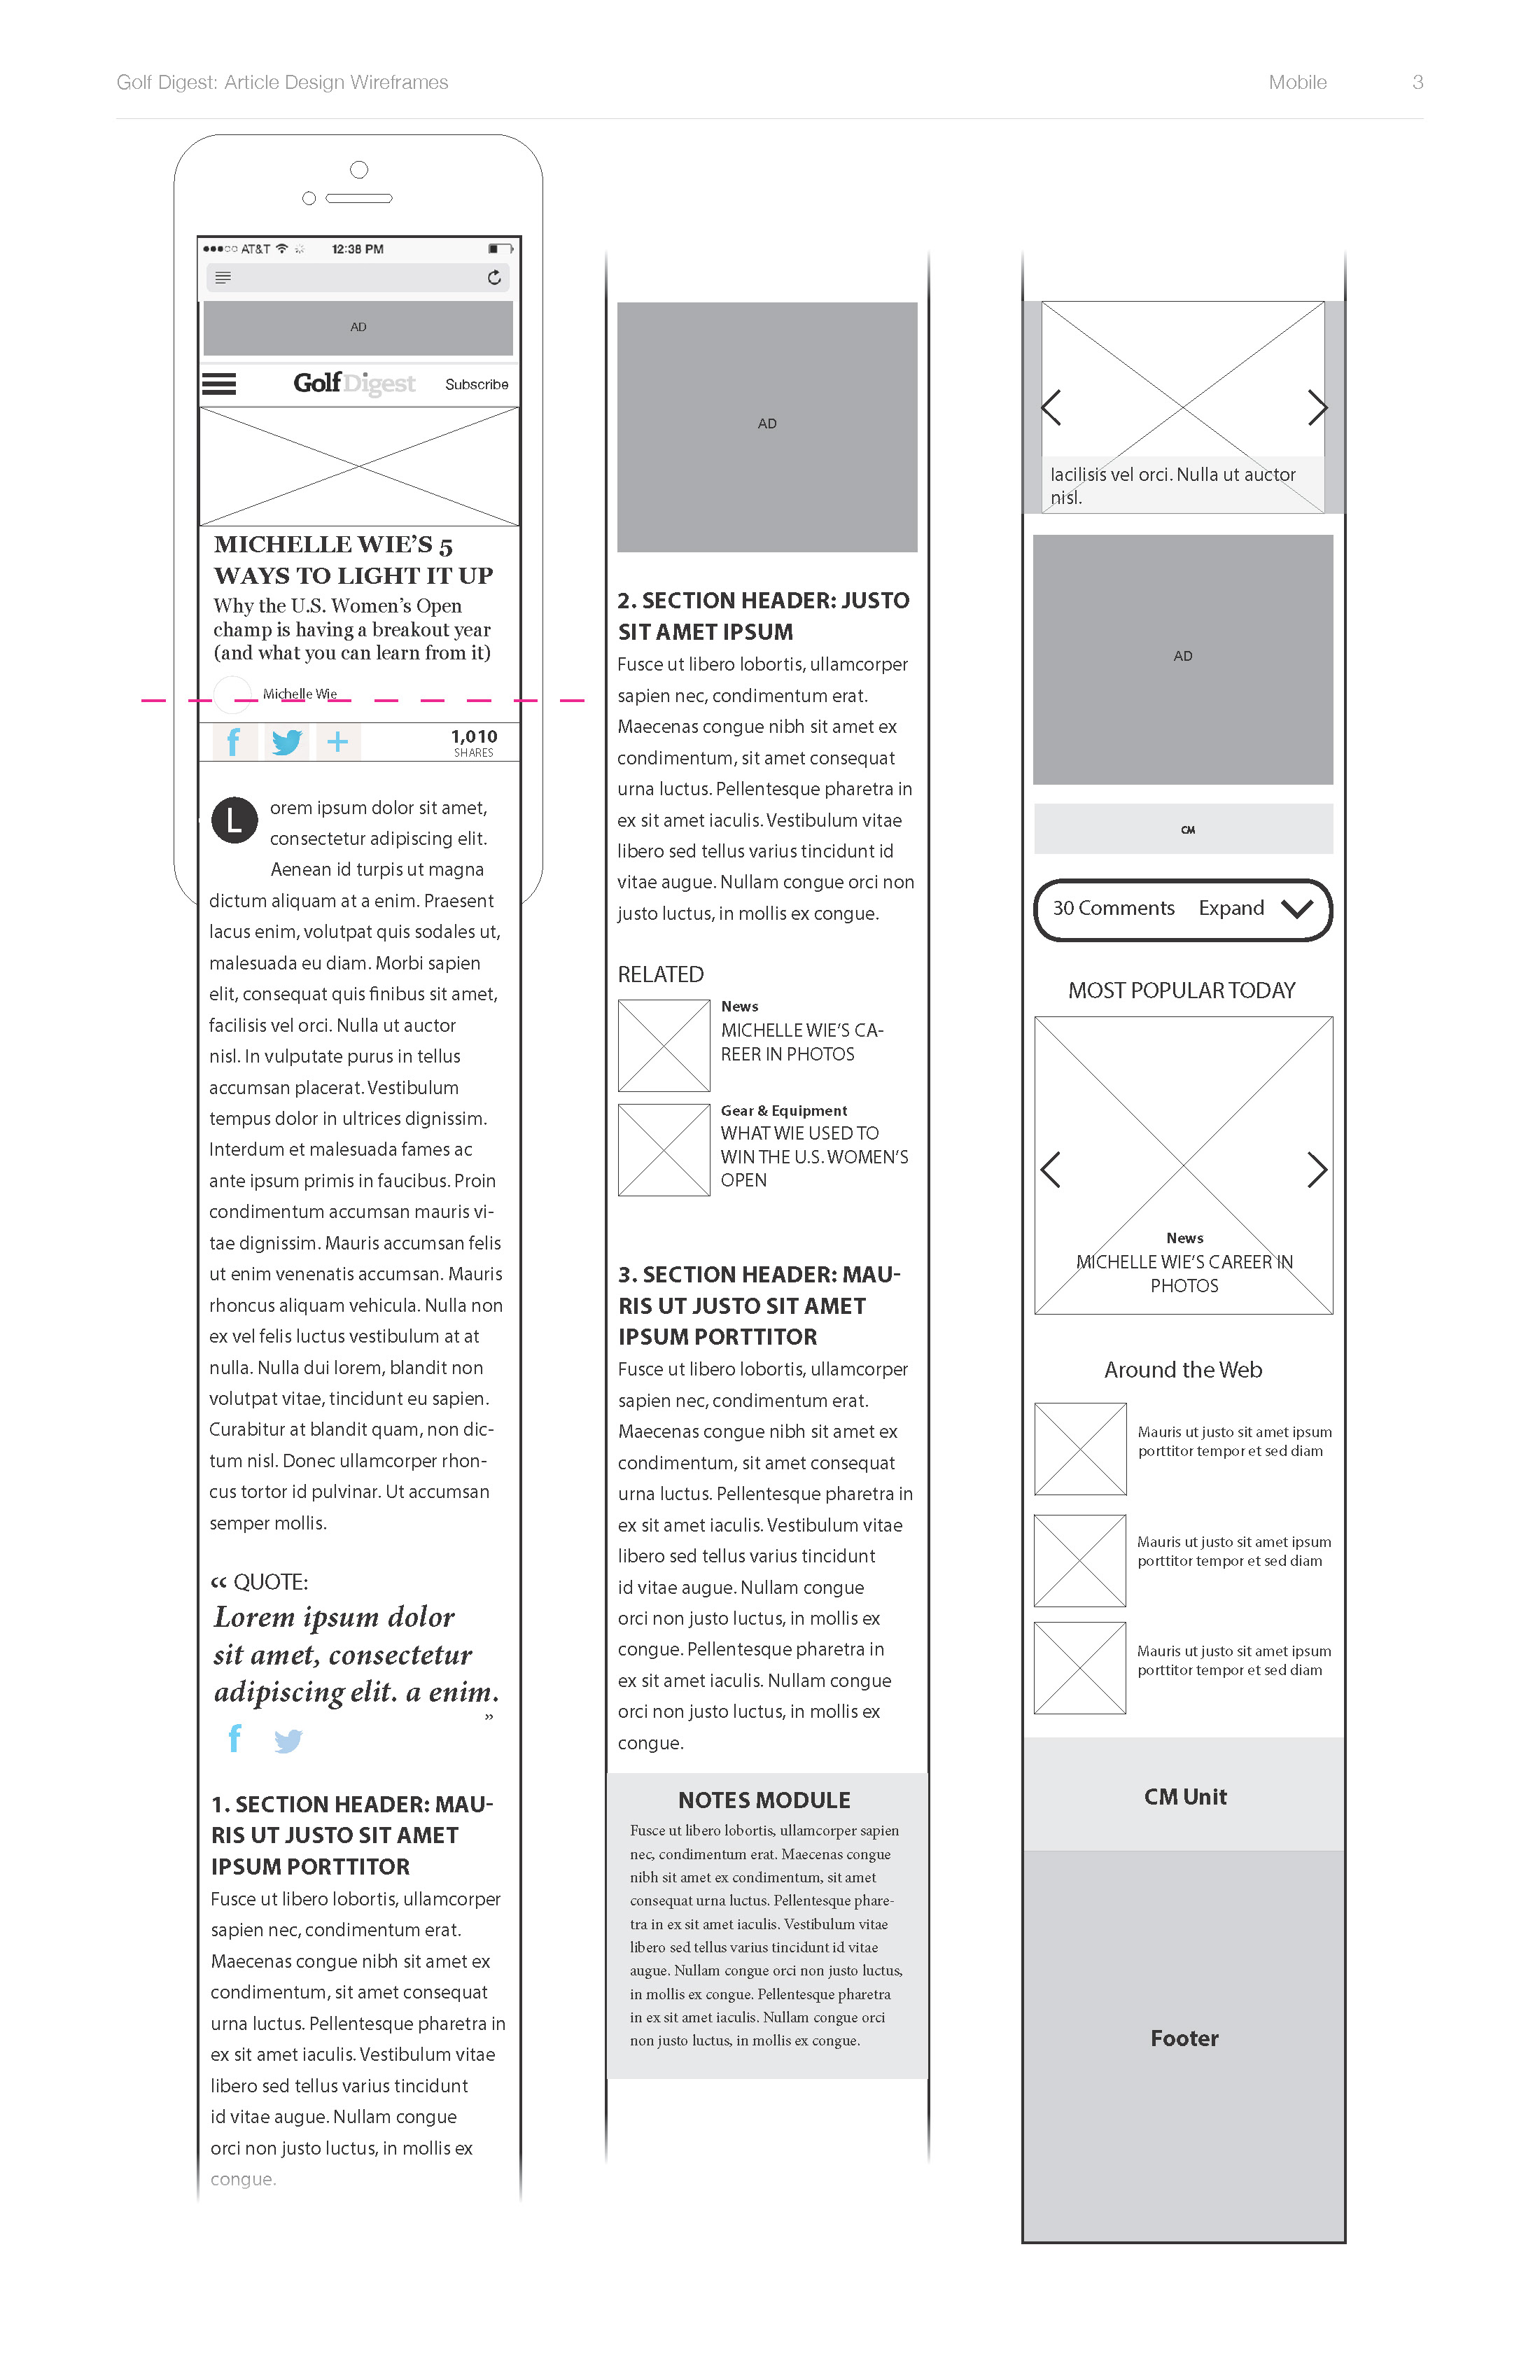 GD_Article_Wireframes_v2_Page_3.jpg